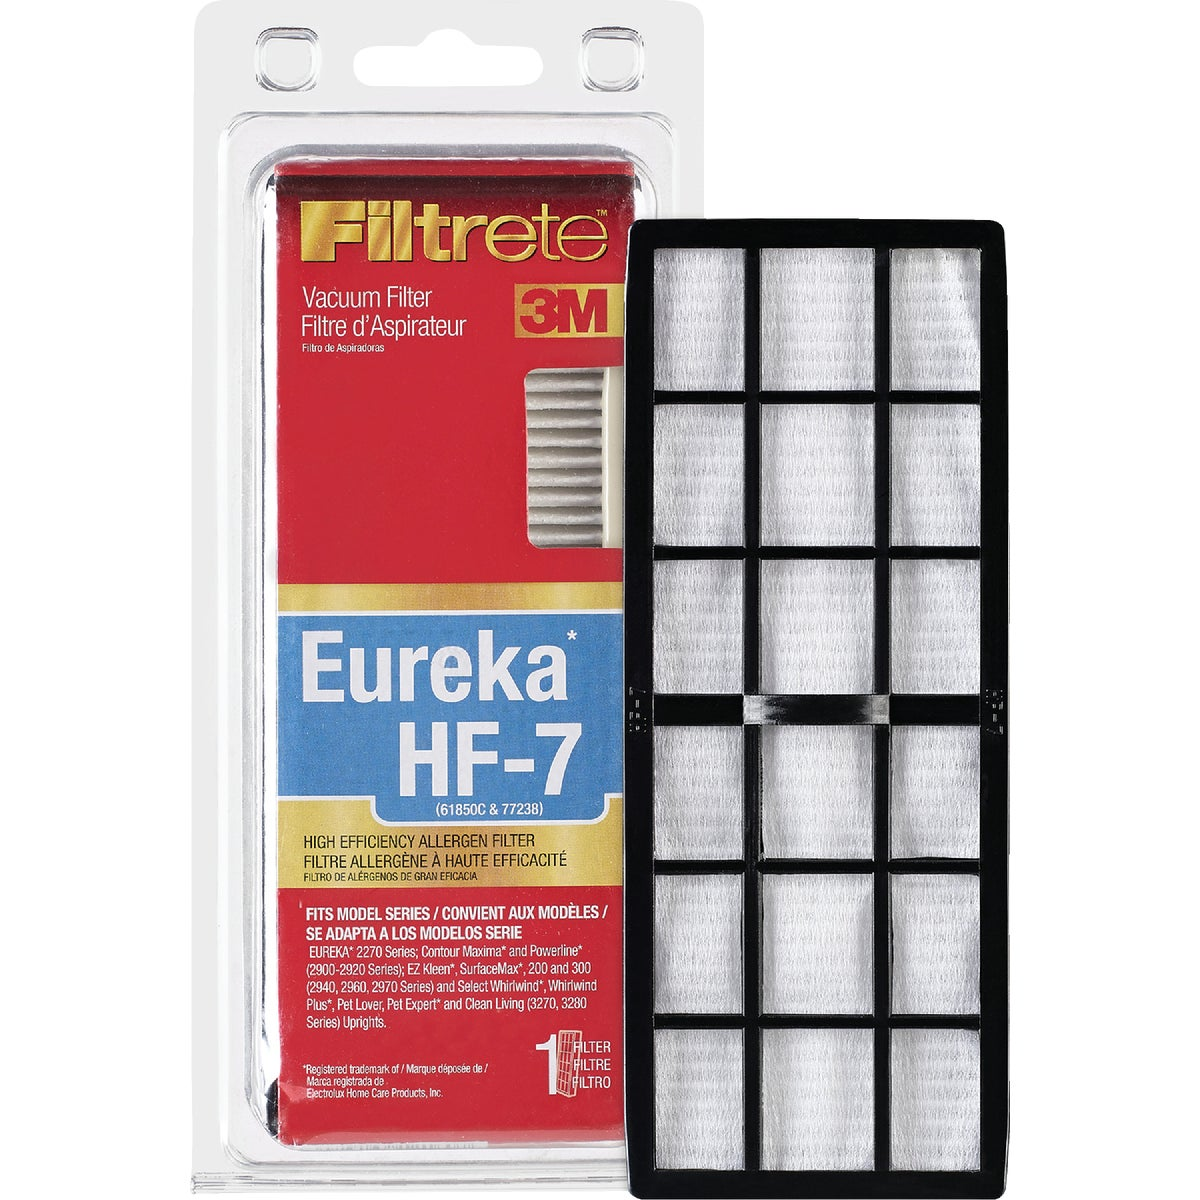 Eureka HF-7 High Efficency Allergen Vacuum Filter, 67807B-4